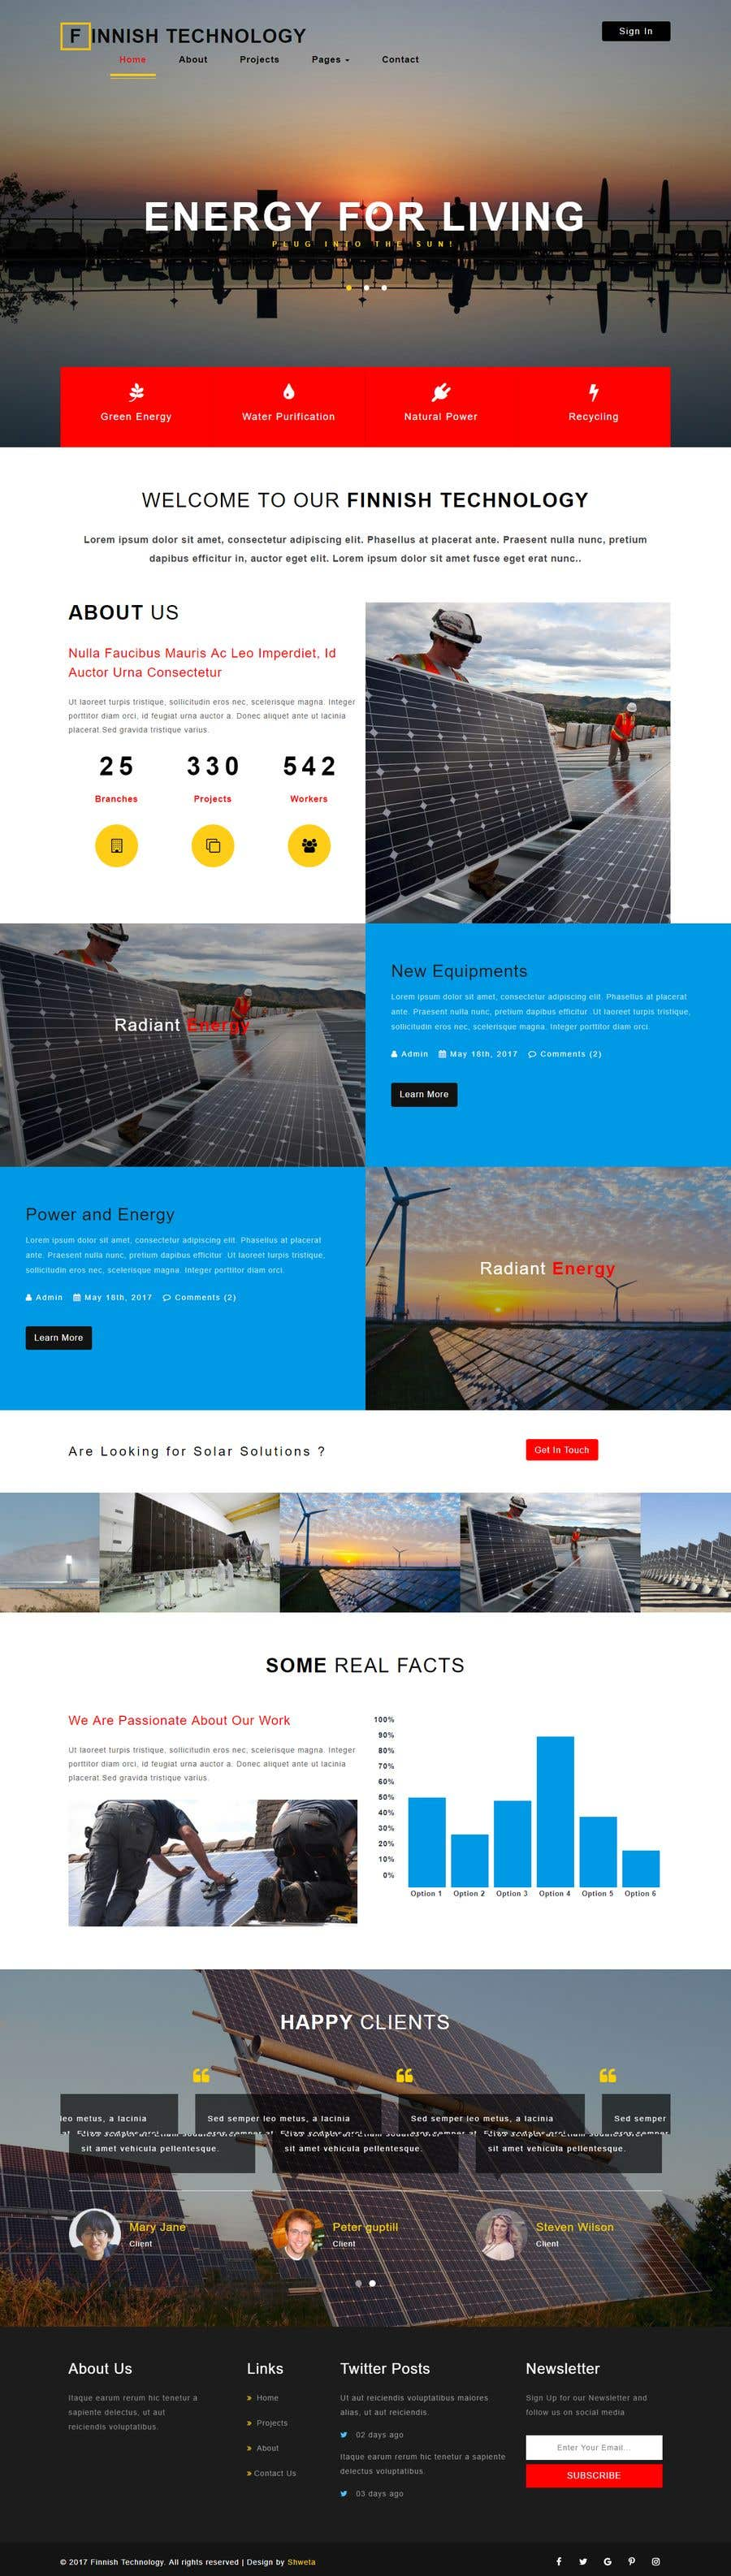 Contest Entry #8 for Design a Website layout for an innovative technology company